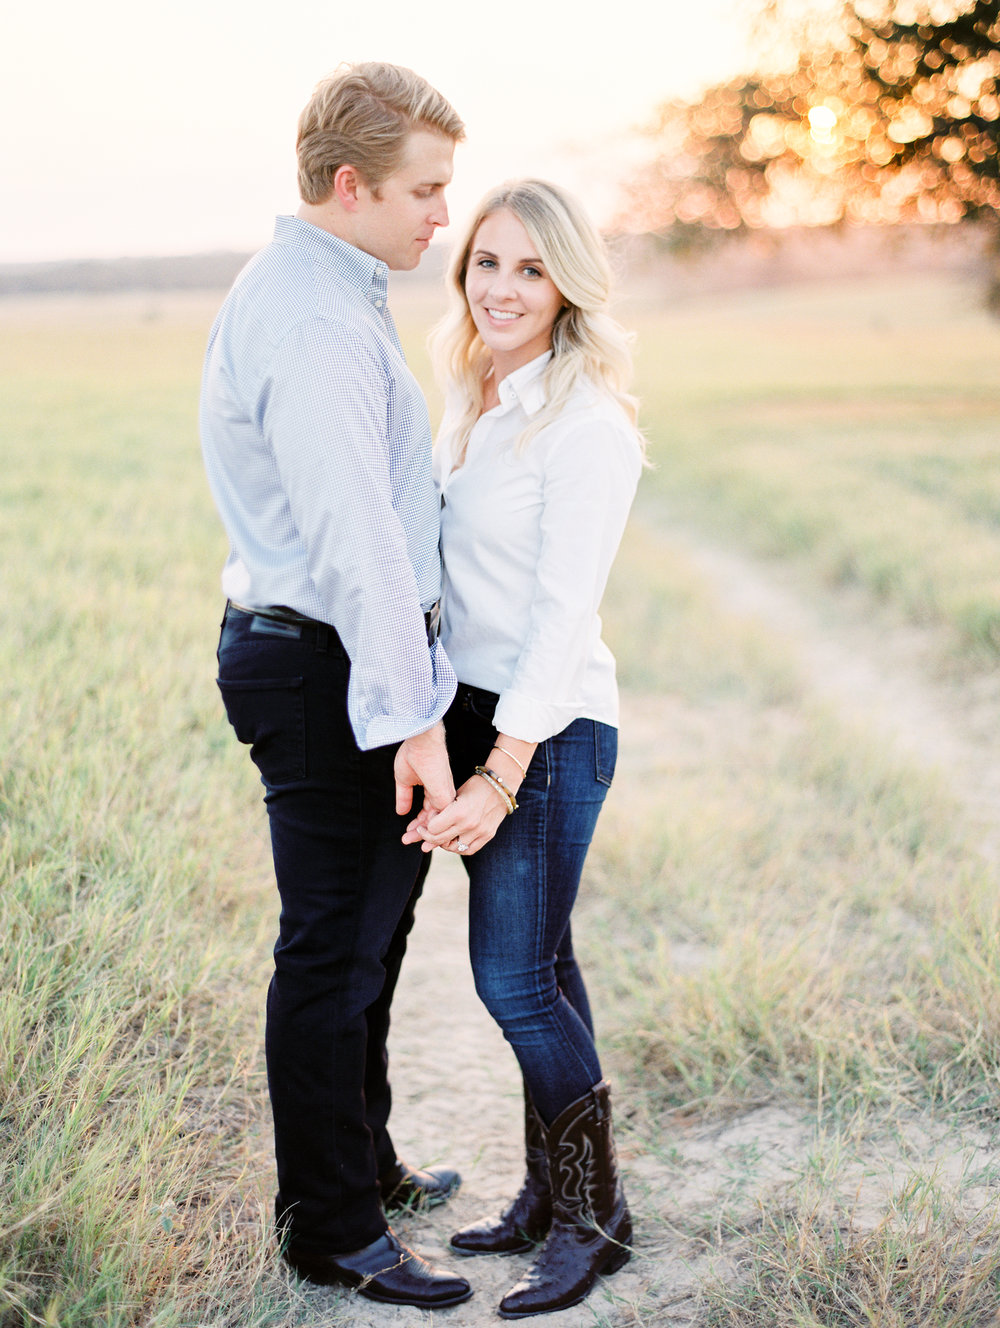 Lauren+John+Engaged+TX-18.jpg